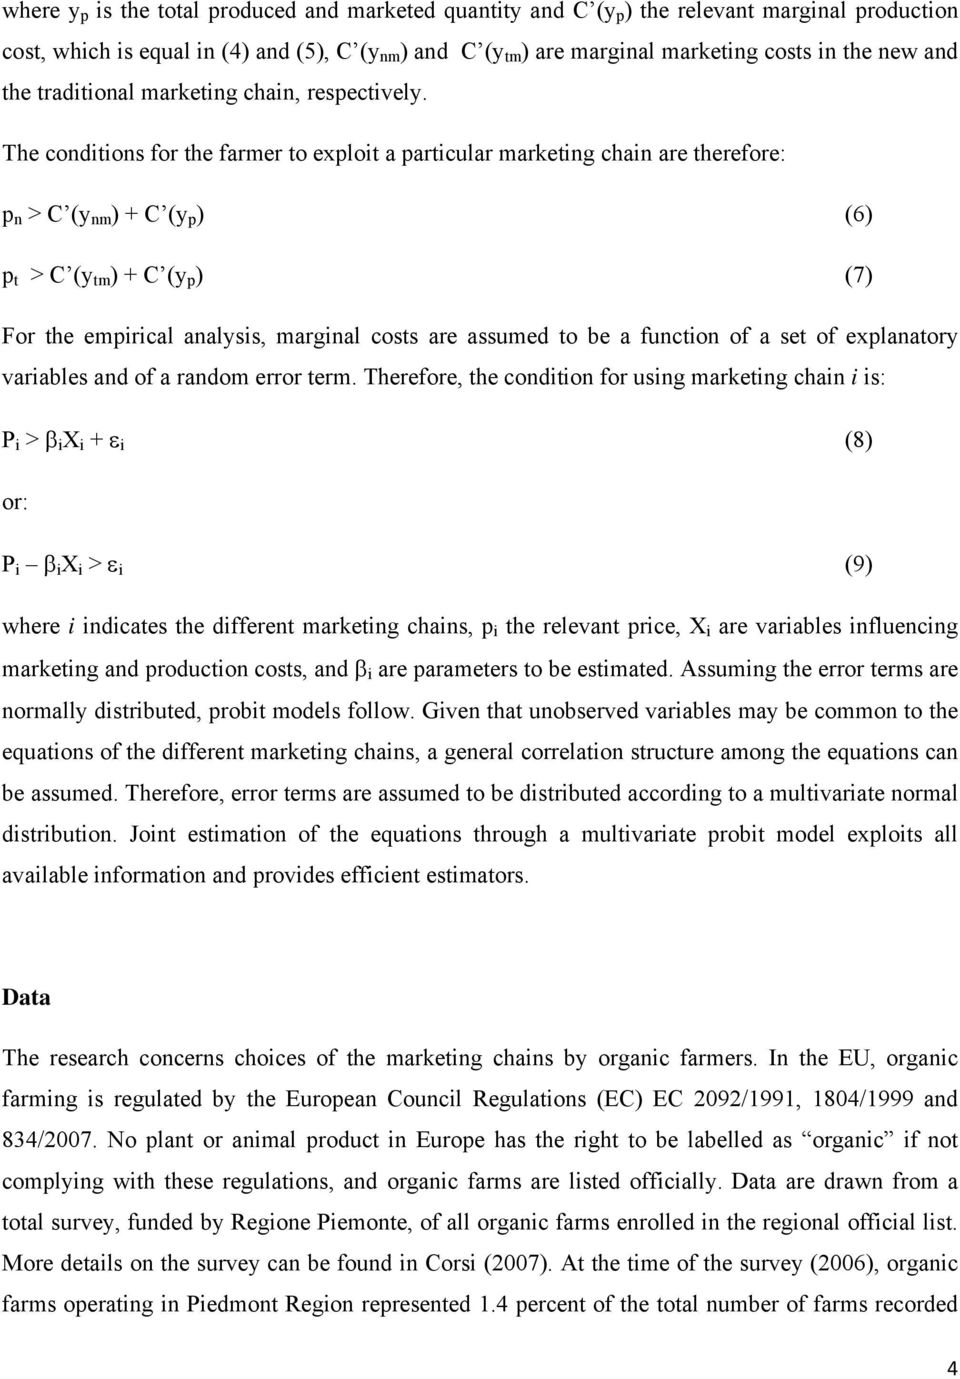 The conditions for the farmer to exploit a particular marketing chain are therefore: p n > C (y nm ) + C (y p ) (6) p t > C (y tm ) + C (y p ) (7) For the empirical analysis, marginal costs are